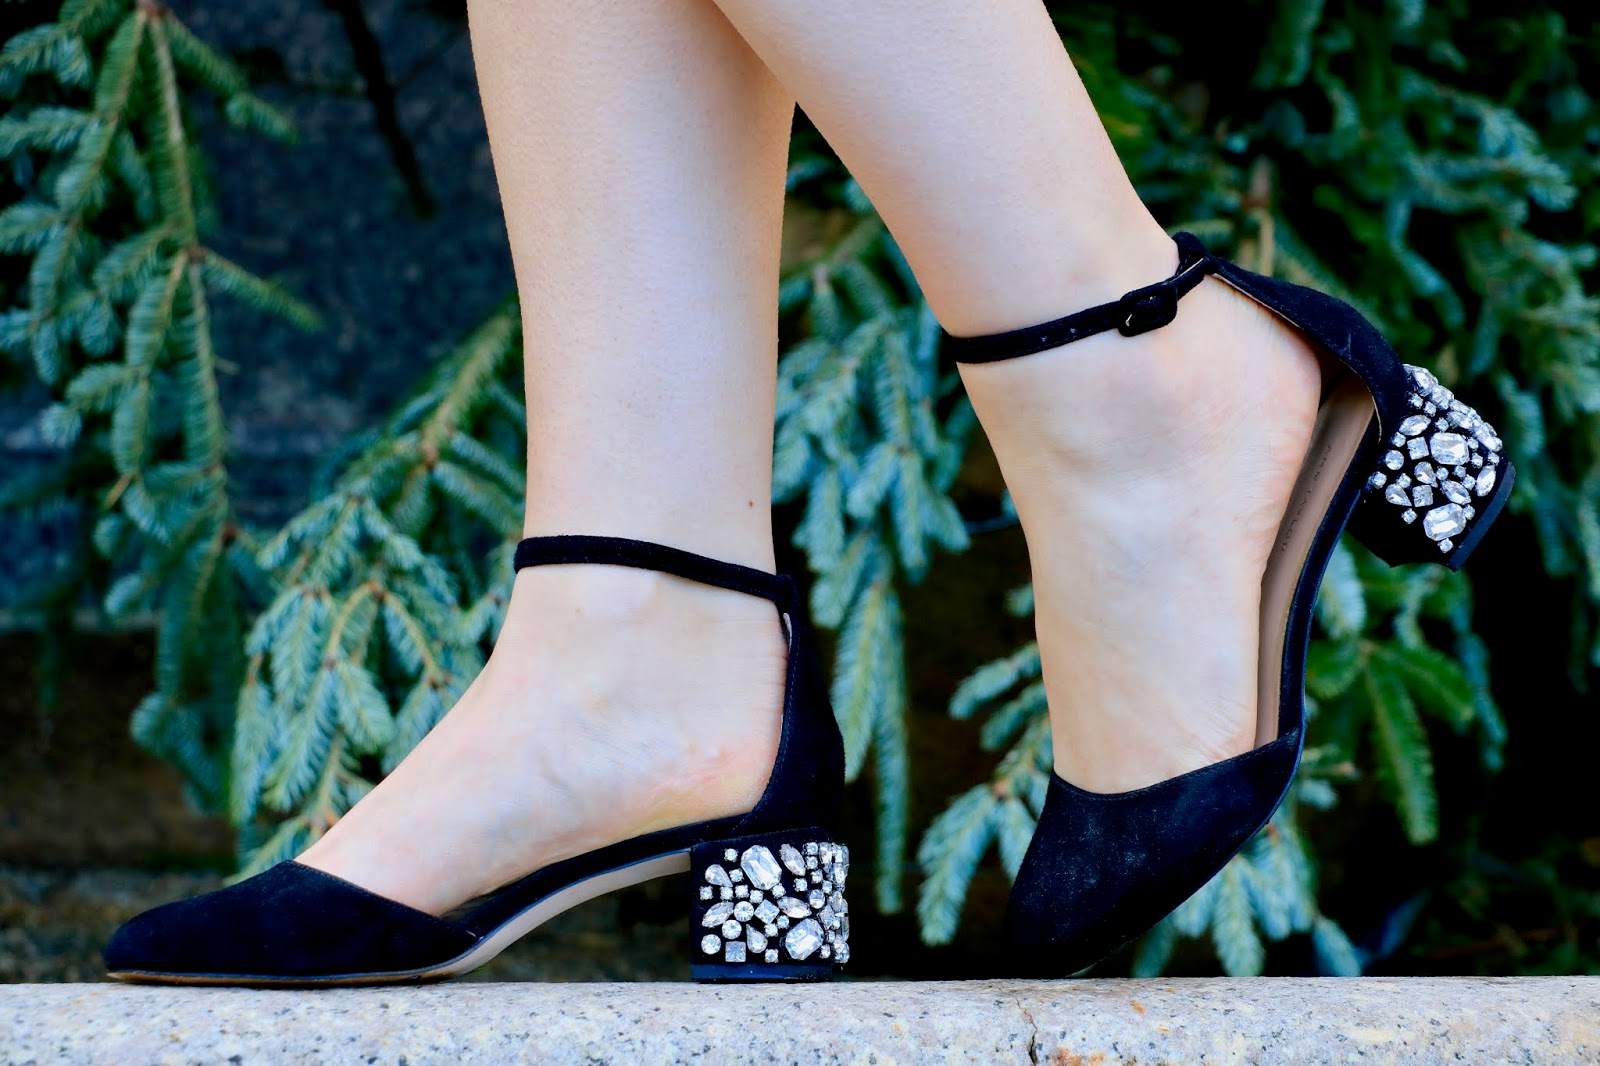 Nyc fashion blogger Kathleen Harper wearing ankle-strap embellished heels